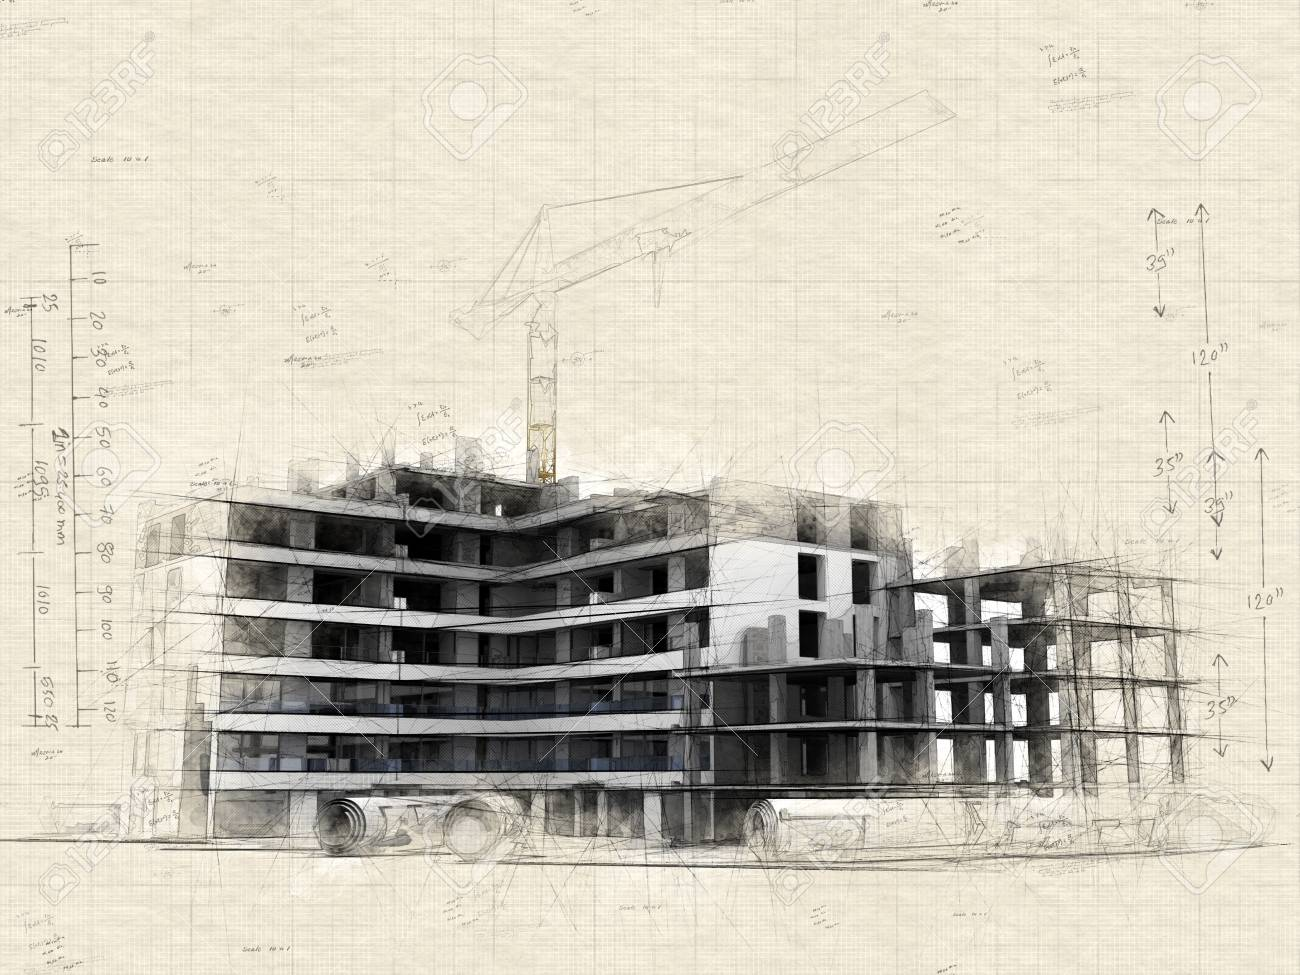 Illustration of Building under construction with crane, on top of blueprints - 111757121